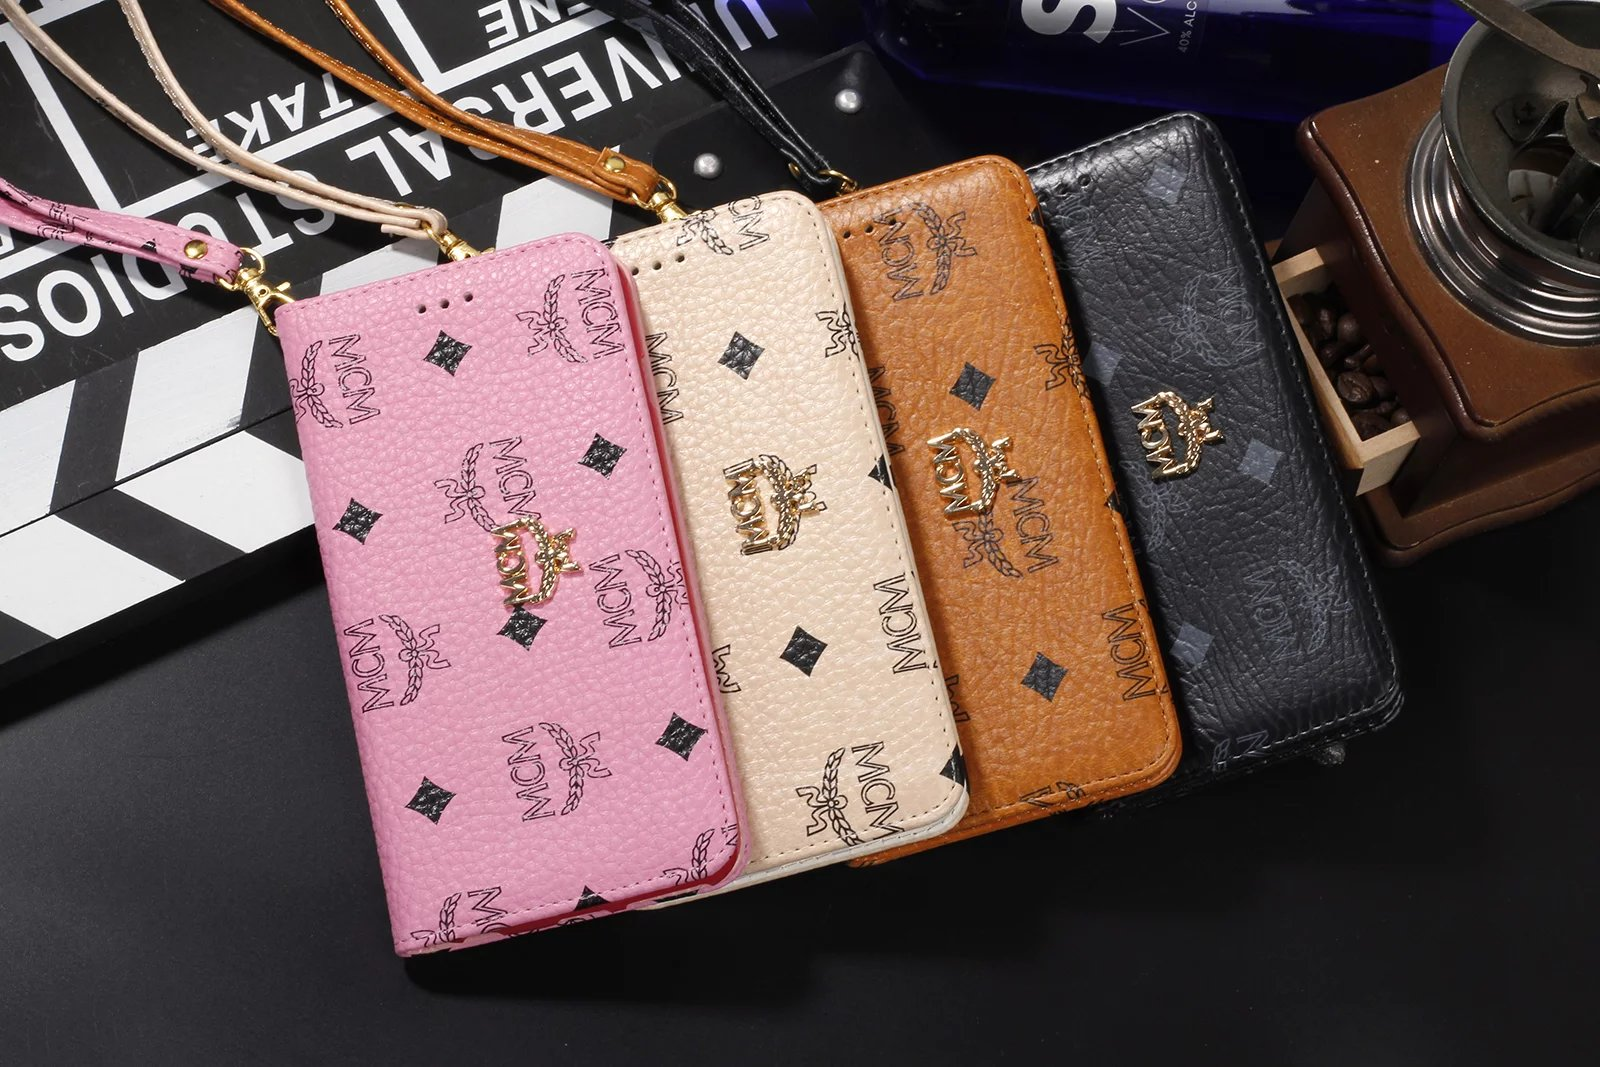 apple iphone case 7 case of iphone 7 fashion iphone7 case iphone leather case phone case shop iphone 7 cases and covers iphone 7 wallet case for women iphone 7 iphone branded iphone 7 cases